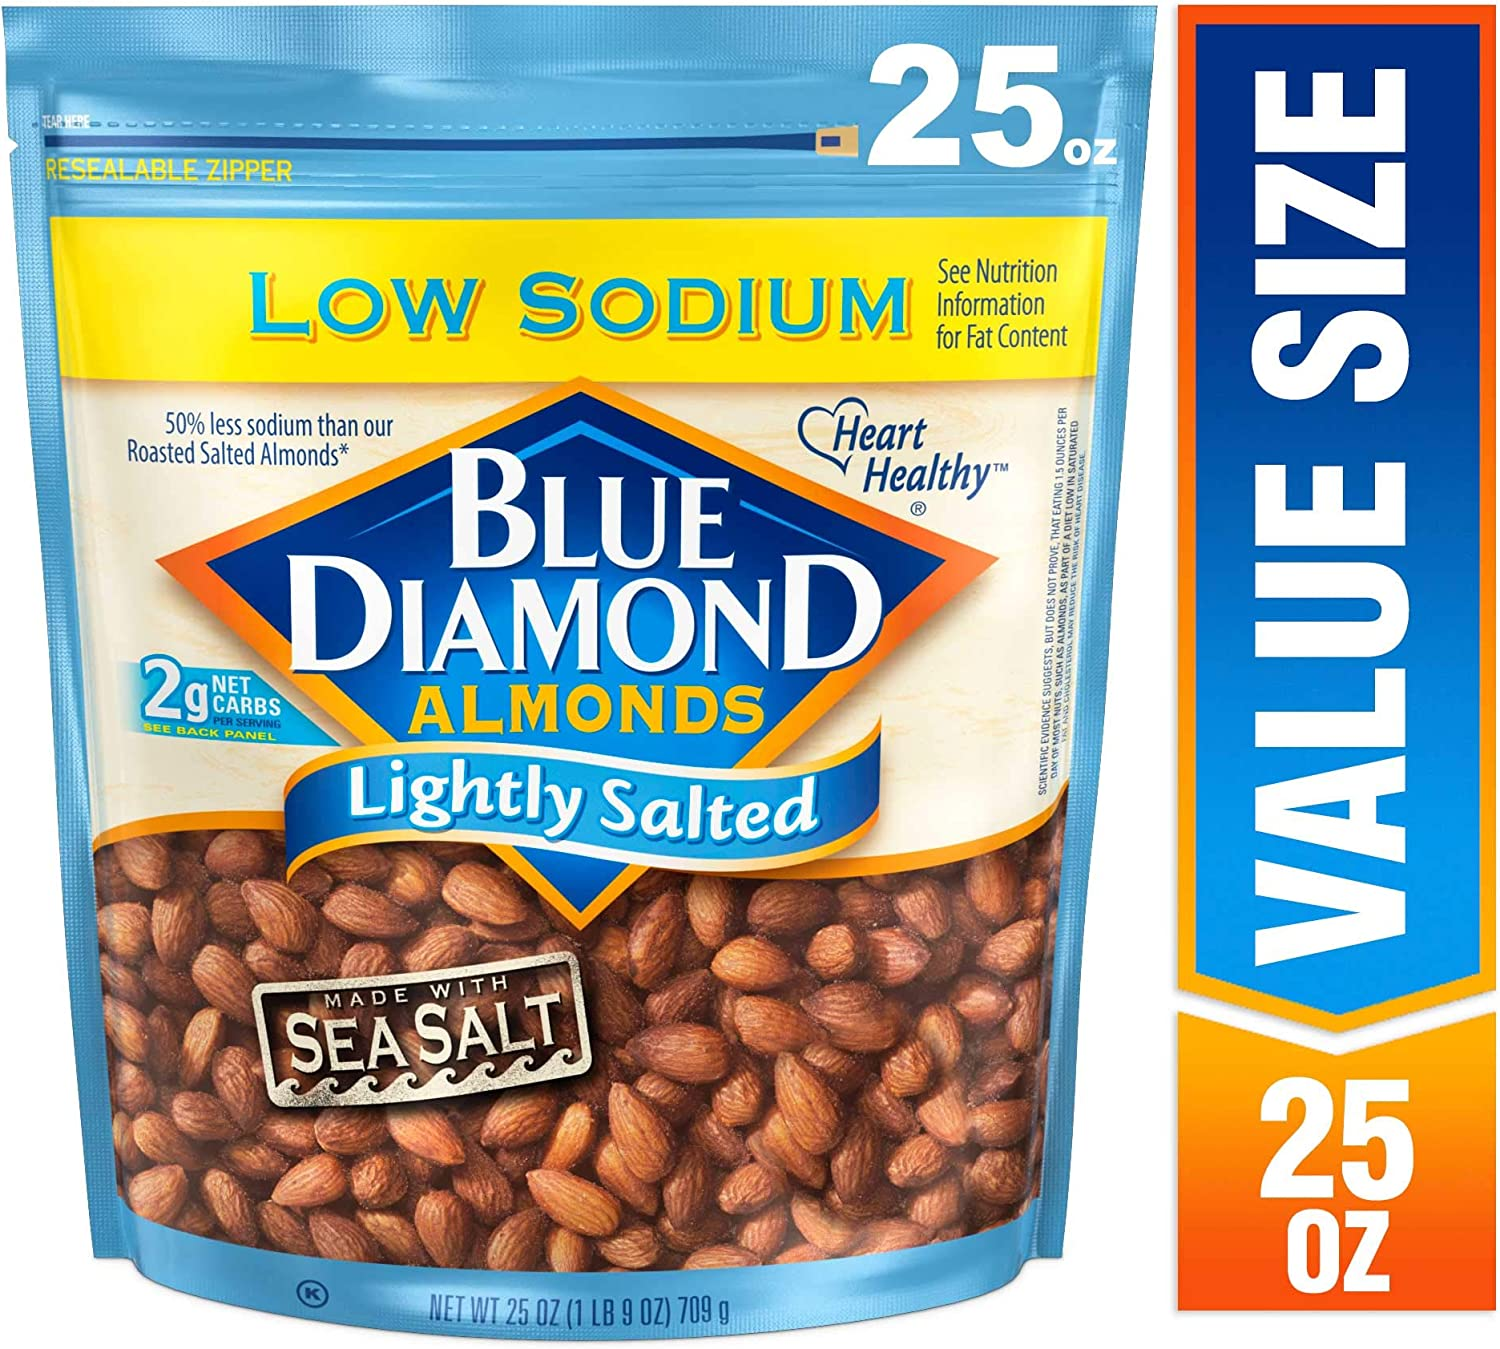 Blue Diamond Almonds, niedrig Sodium Lightly Salted, 25 Ounce